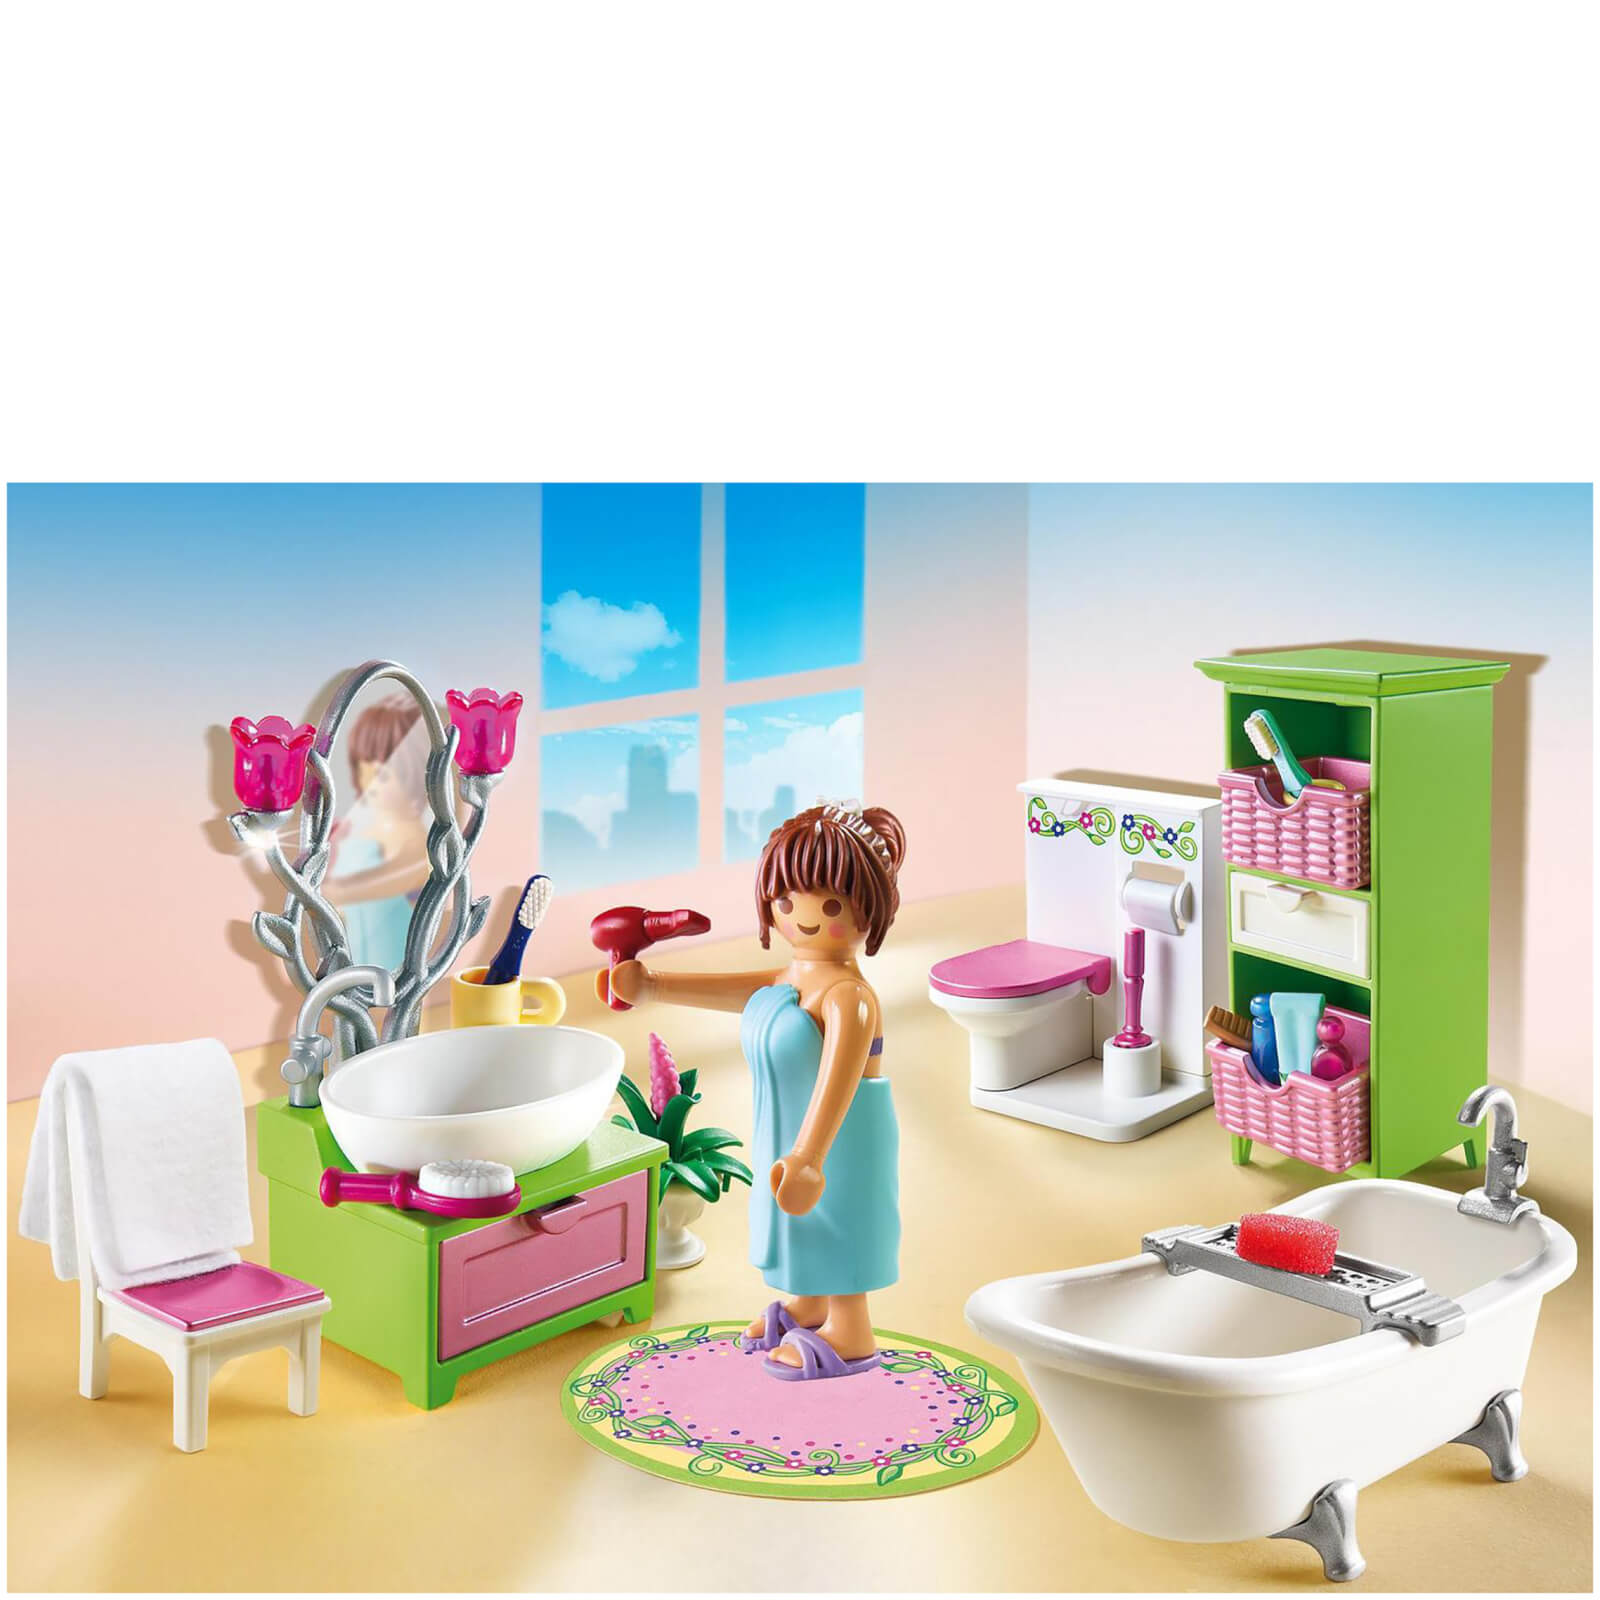 Playmobil Vintage Bathroom (5307)